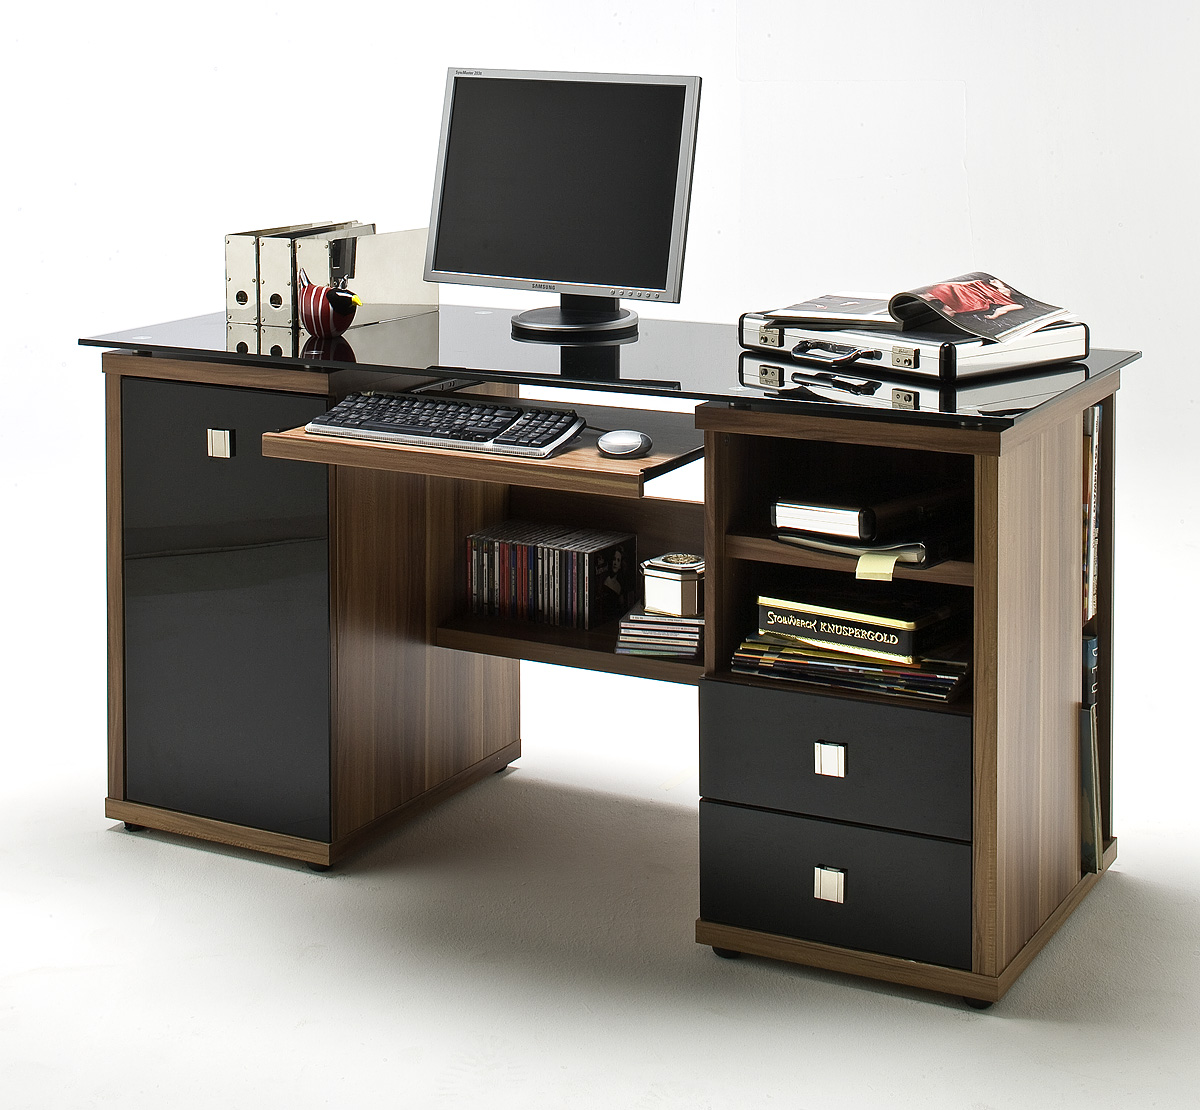 schreibtisch home office walnuss glas schwarz ebay. Black Bedroom Furniture Sets. Home Design Ideas